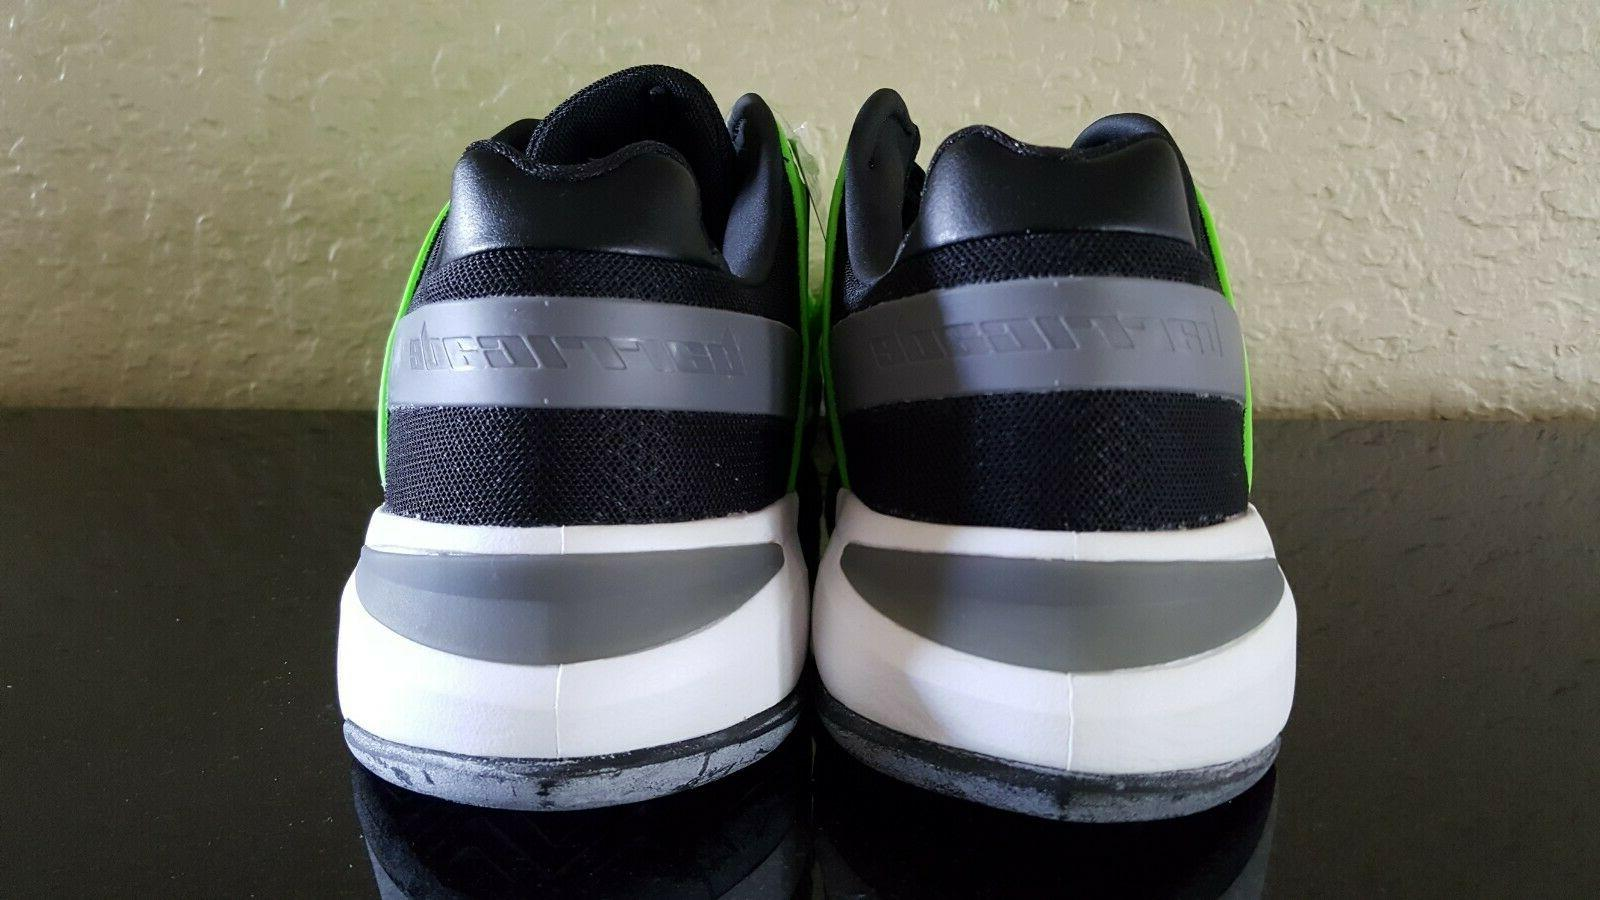 Adidas shoes Andy Open